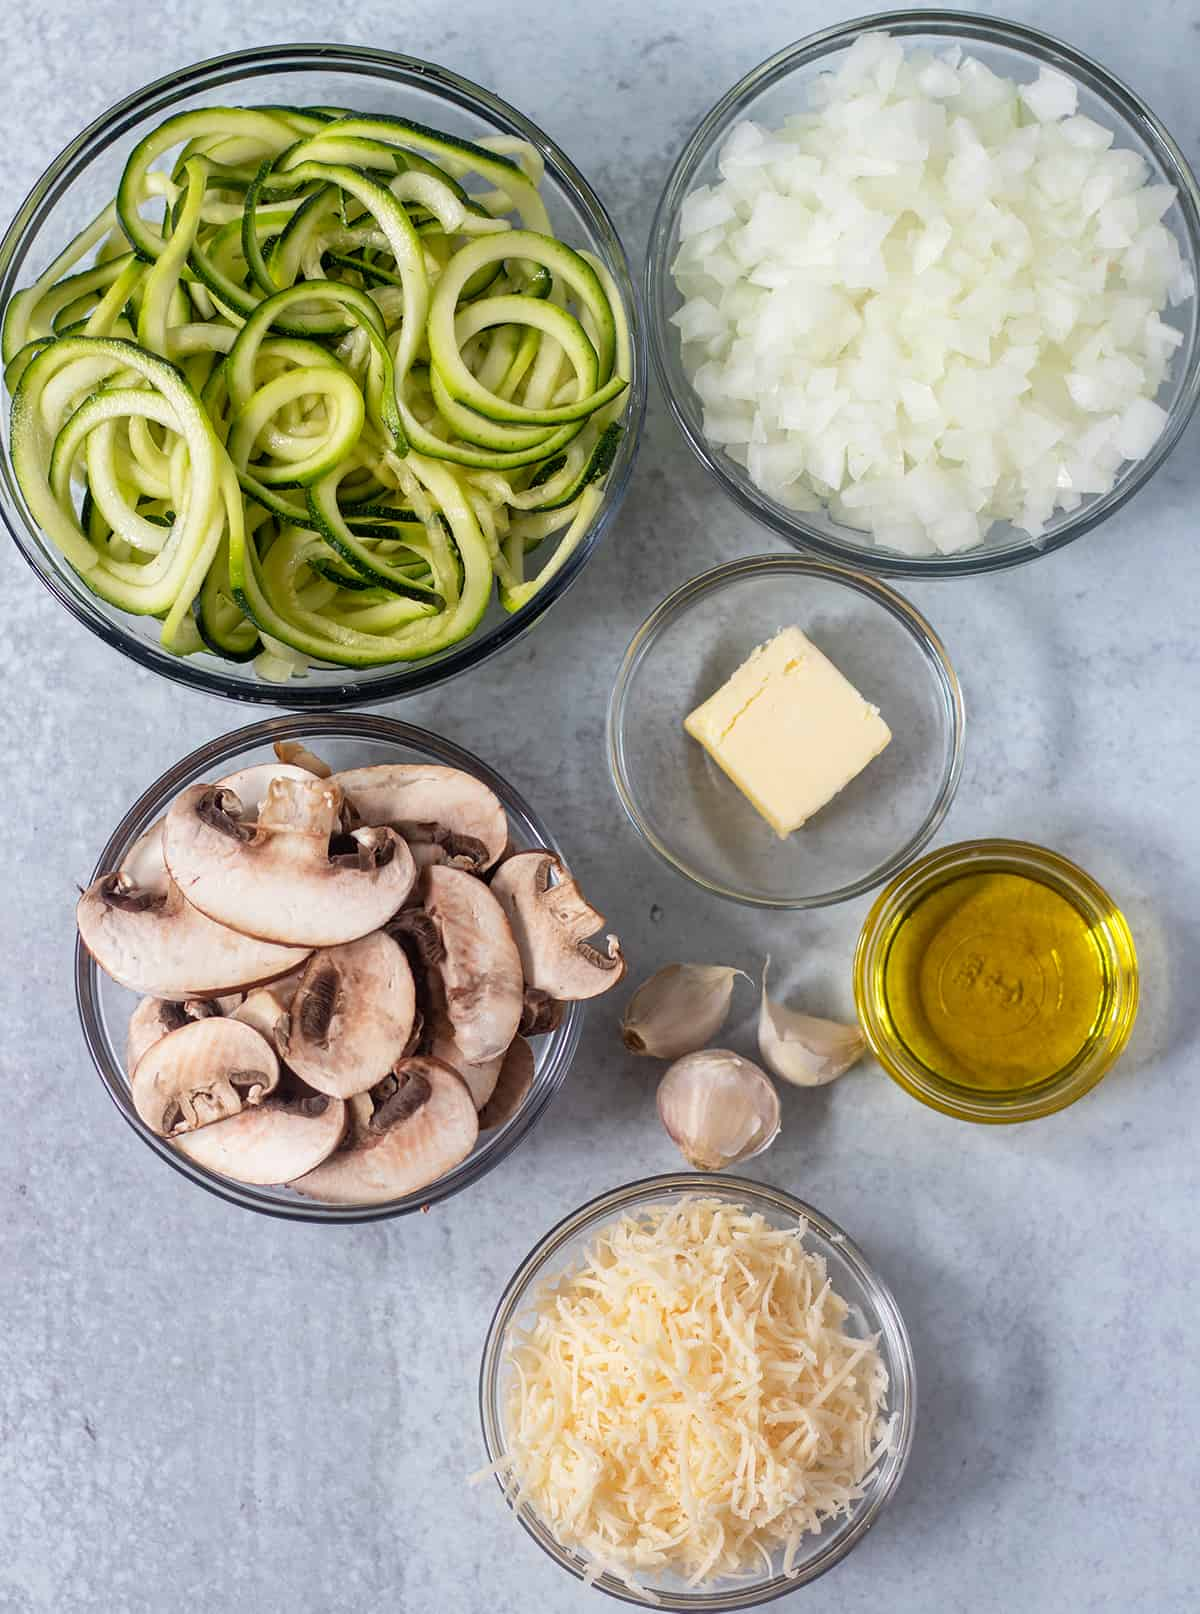 zucchini noodles, onions, mushrooms, garlic, butter, olive oil, parmesan cheese